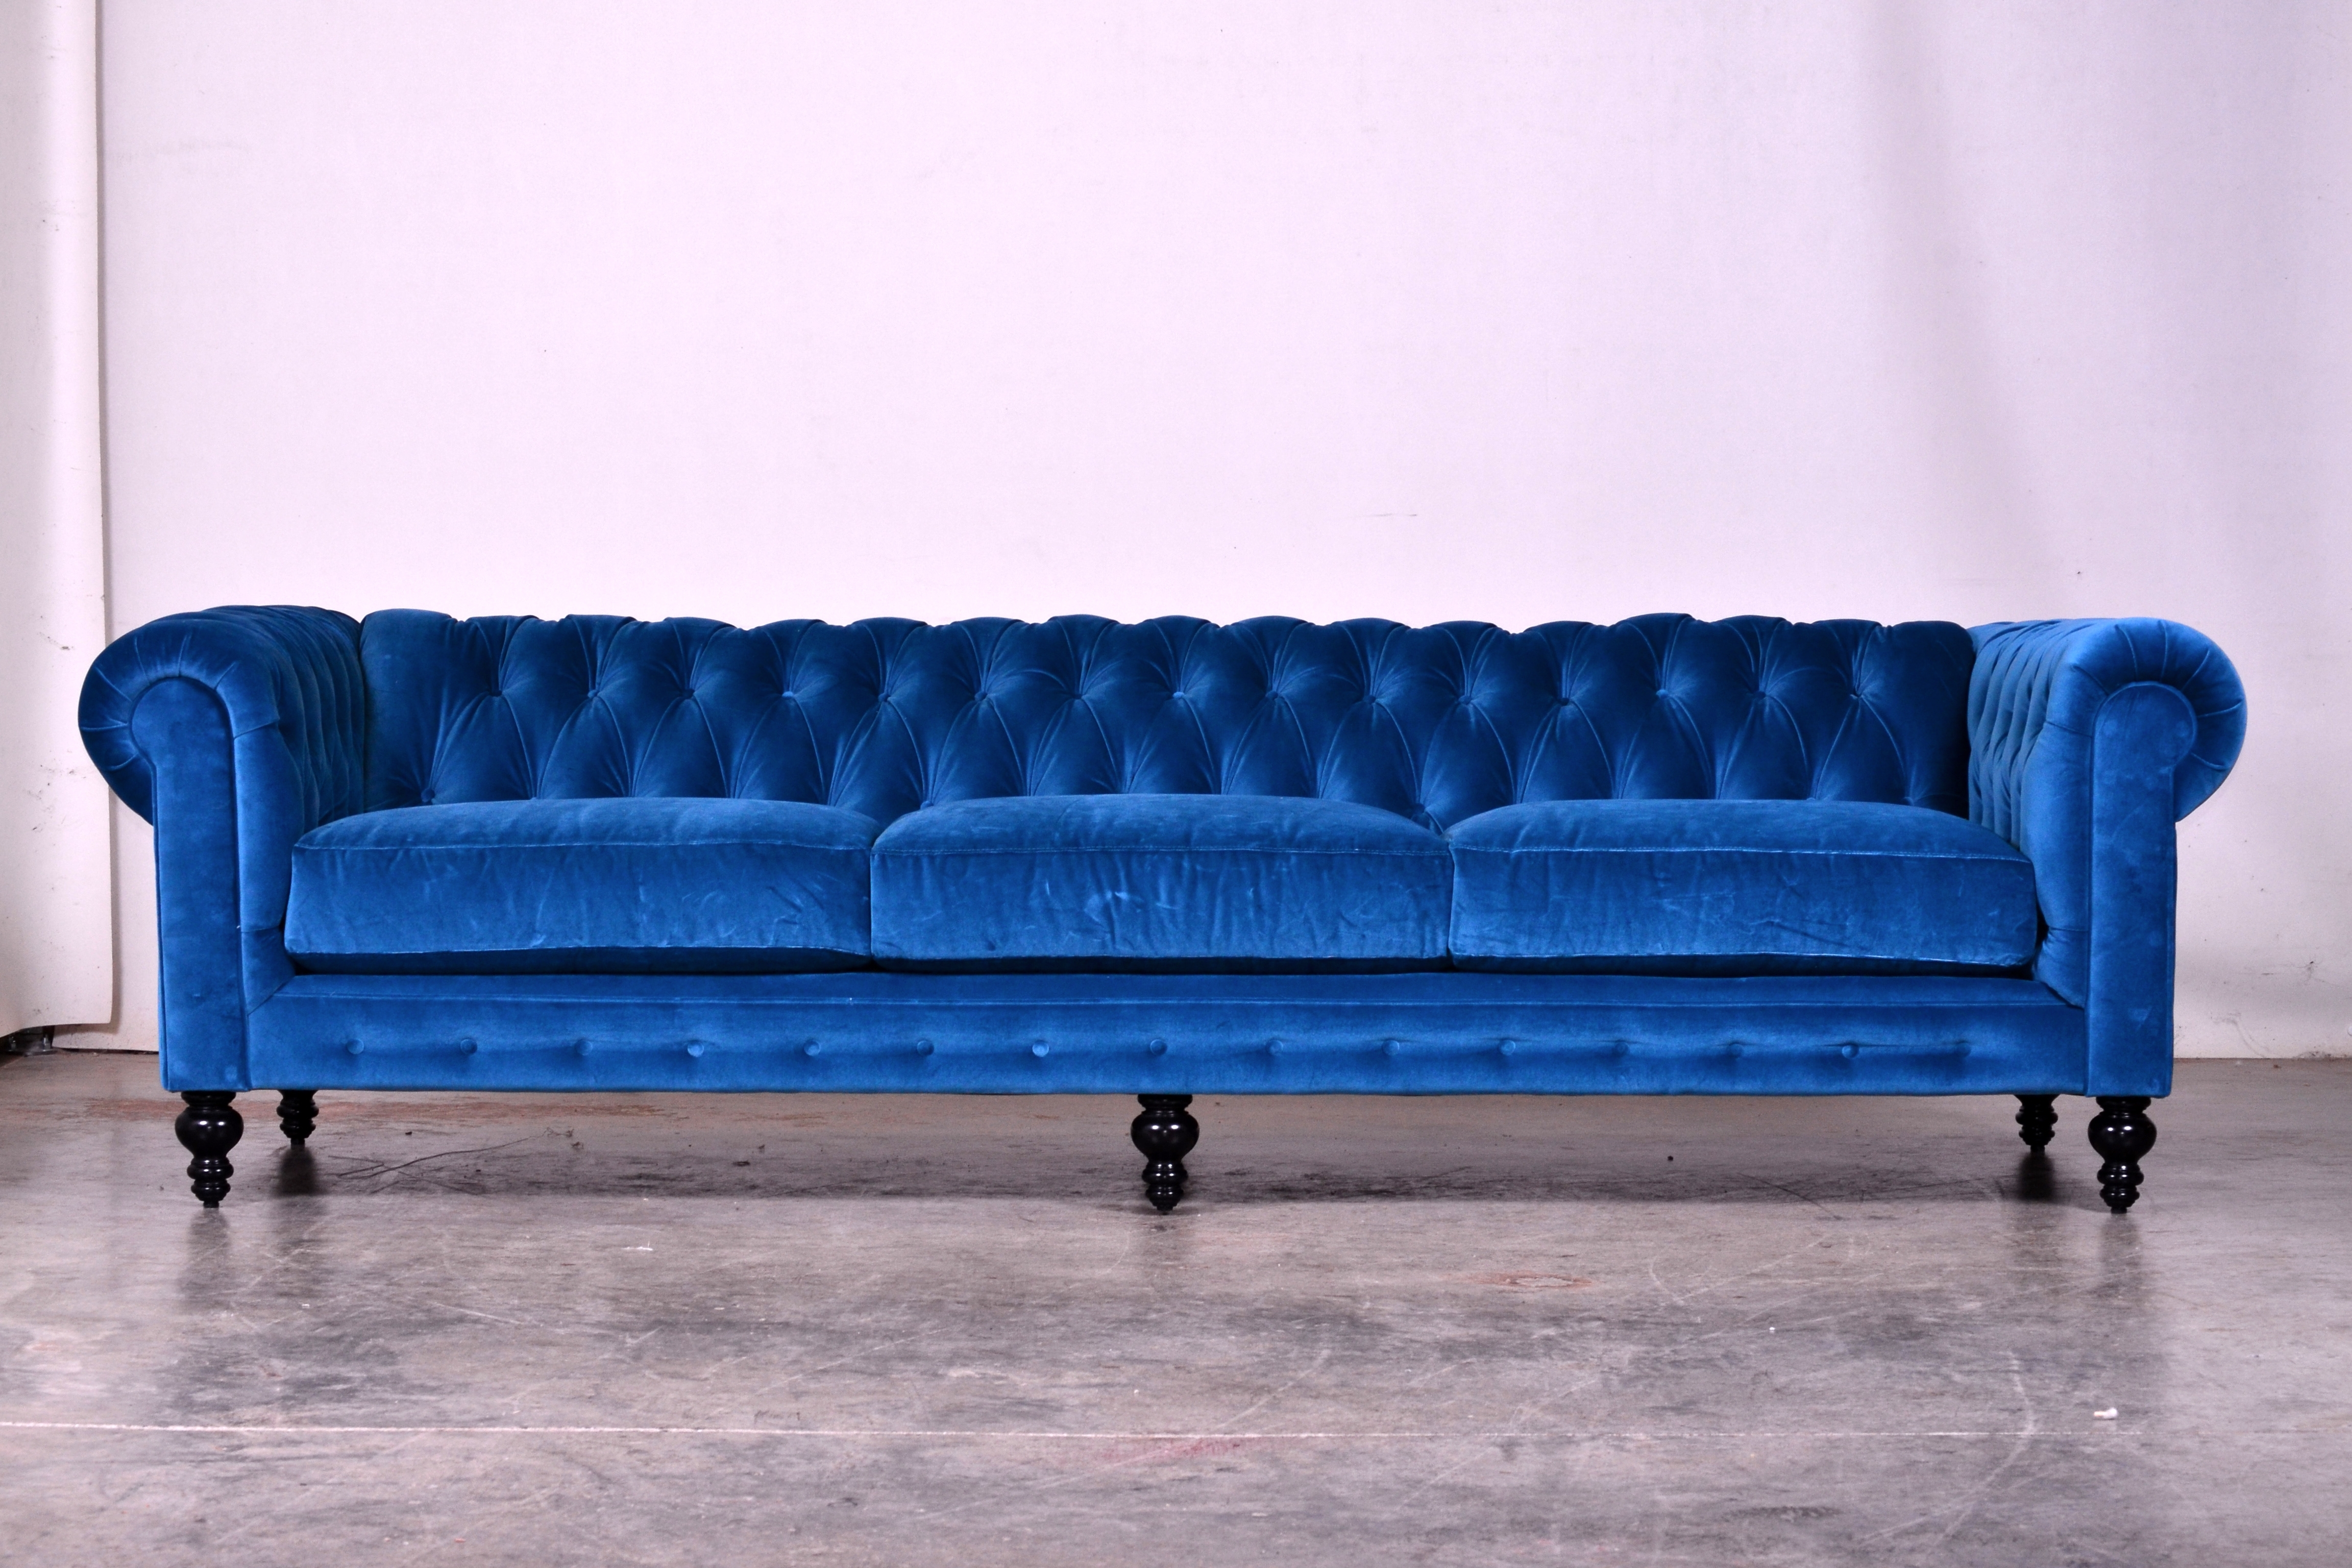 Long Modern Sofas With Regard To 2018 The Comfortable Couch Company (Cococo) Como Cyan Chesterfield (View 9 of 15)